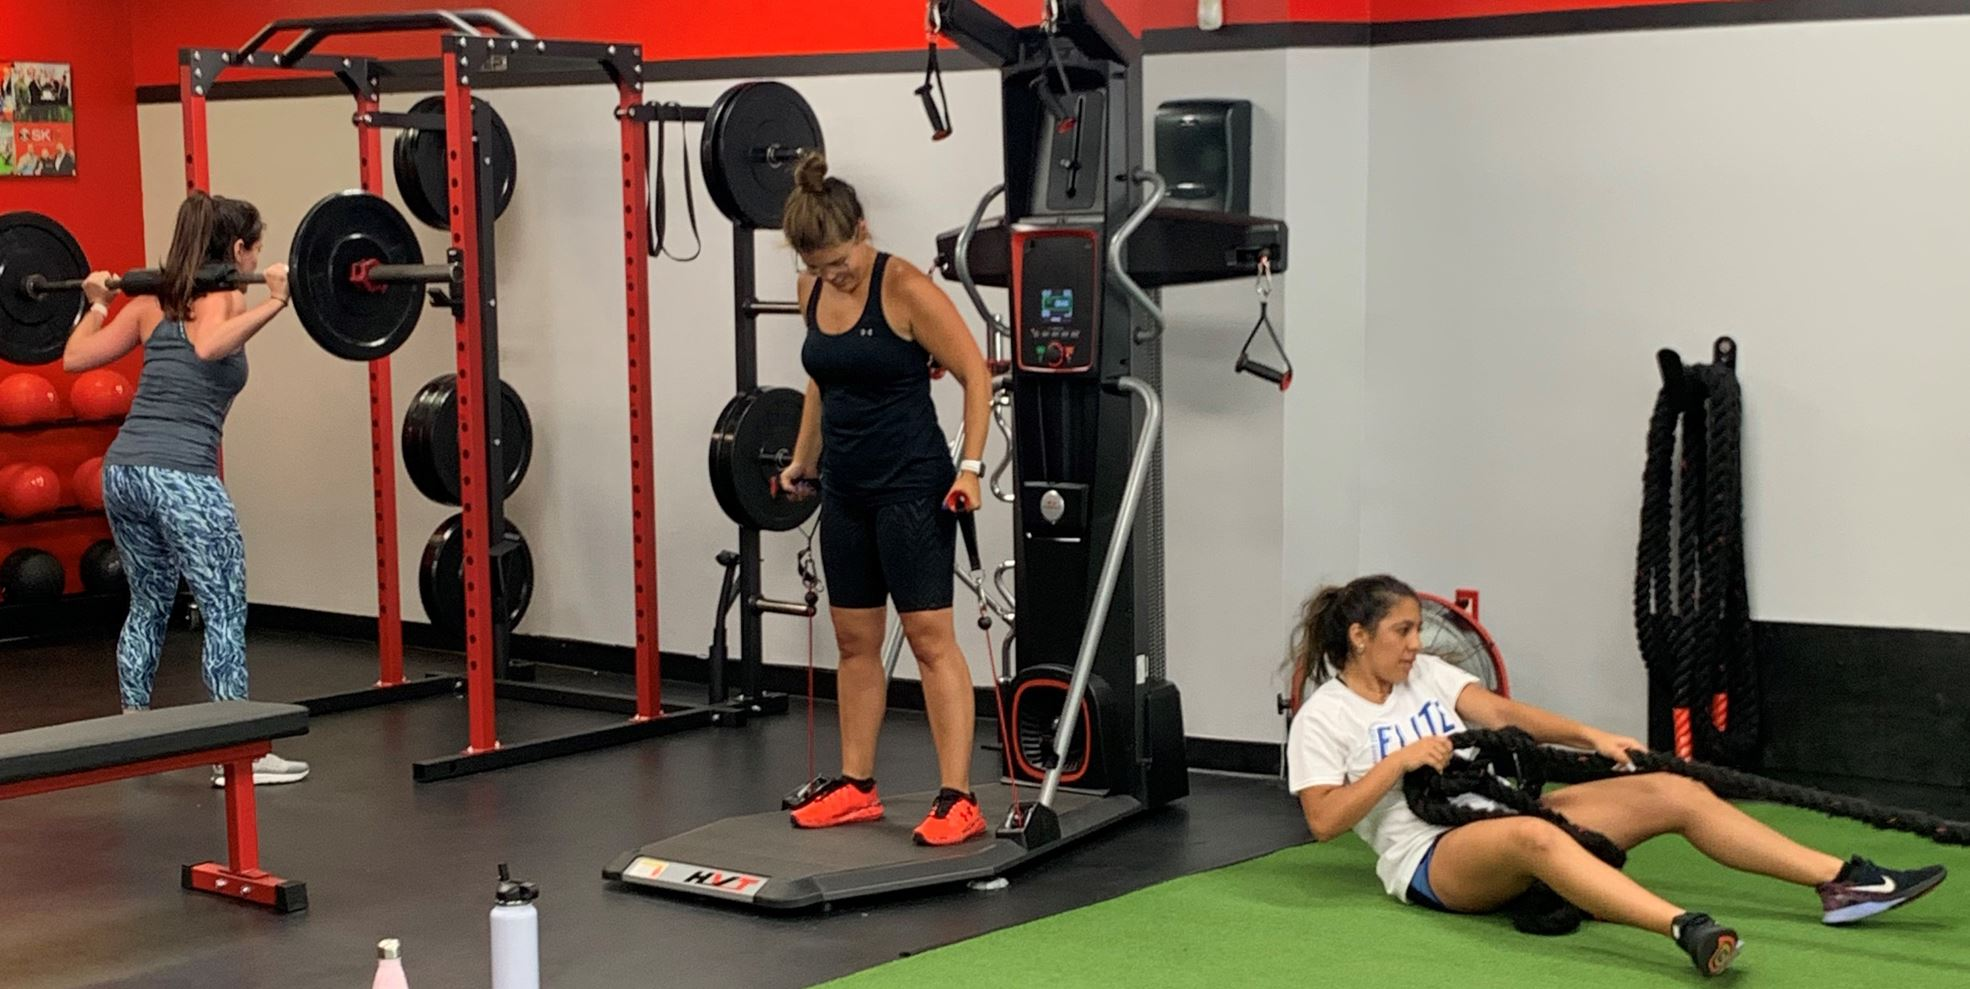 bridal_bootcamp_personal_trainer_session-